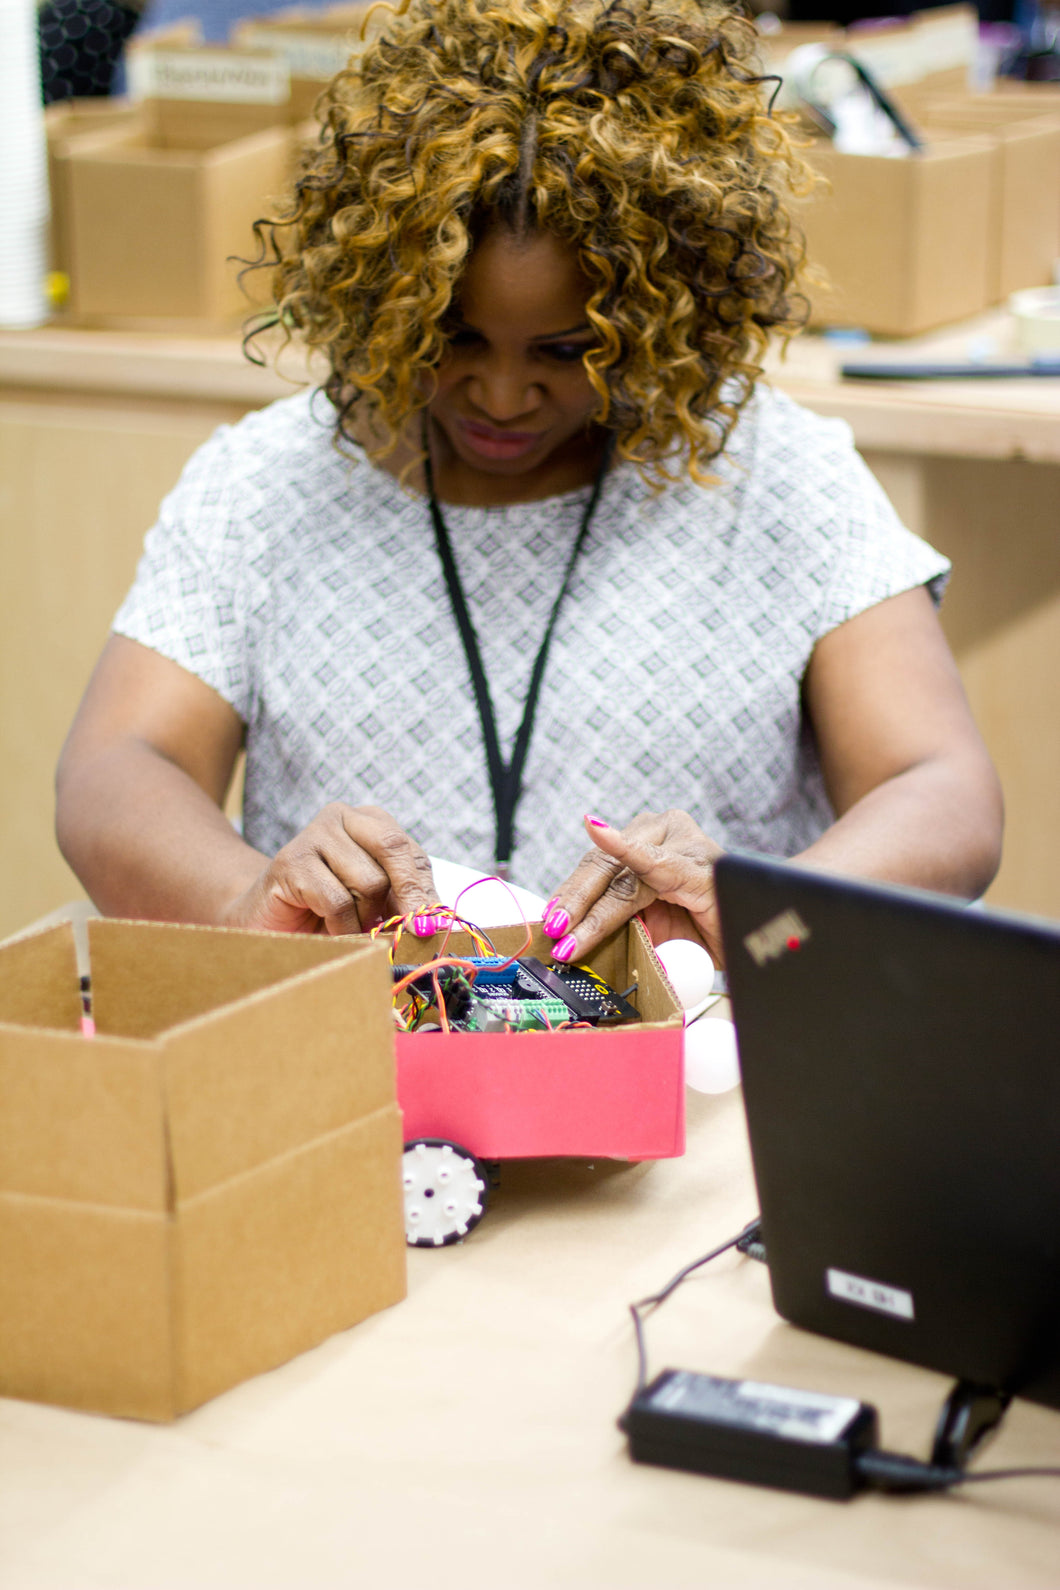 Building and Coding Robots with Microcontrollers in Your Classroom: Training with BirdBrain Technologies' Hummingbird Kits in Evanston, IL (March 2)